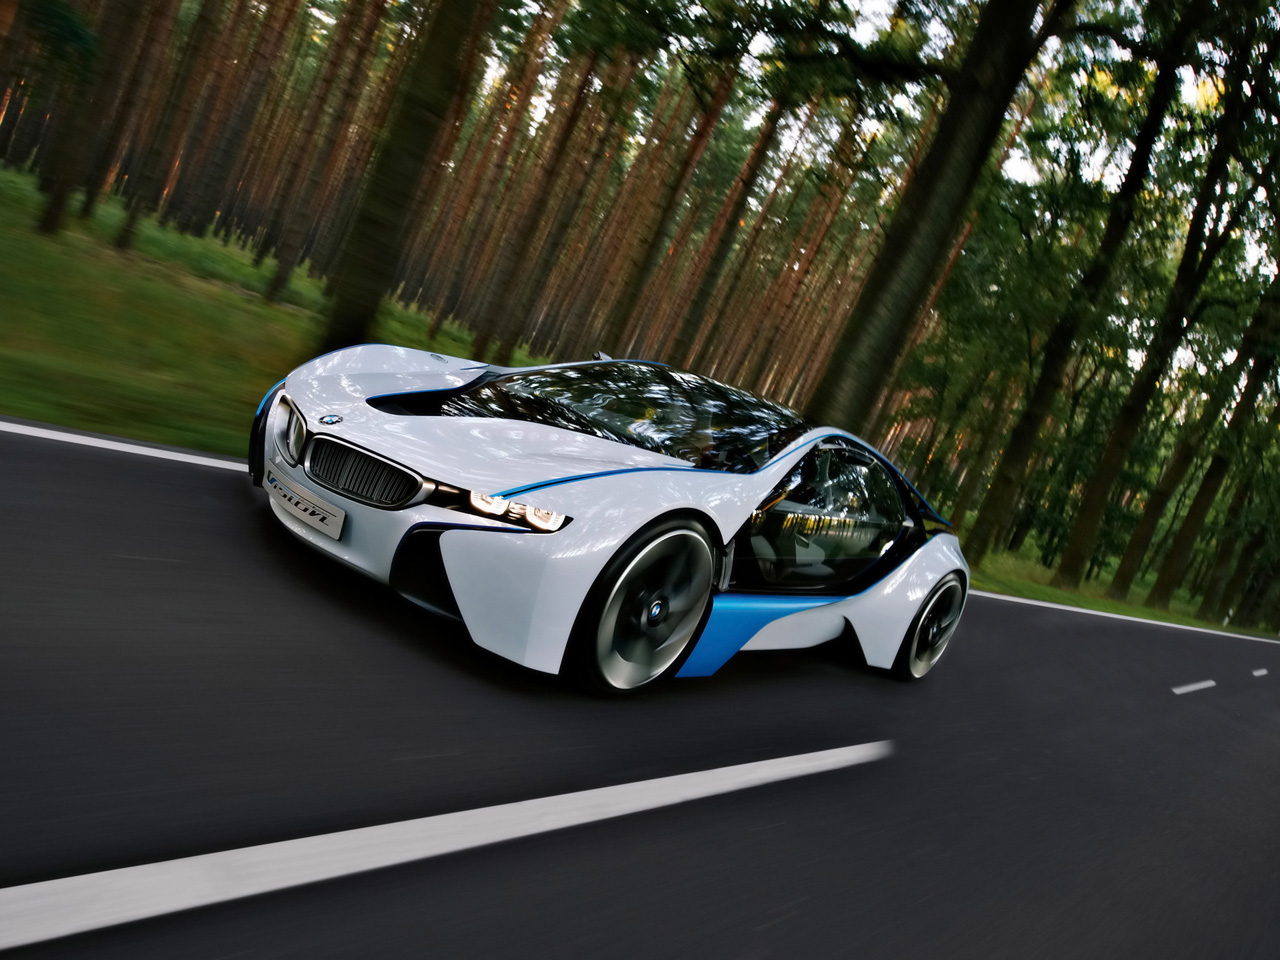 http://www.thesupercars.org/wp-content/uploads/2009/10/2009-BMW-Vision-EfficientDynamics.jpg